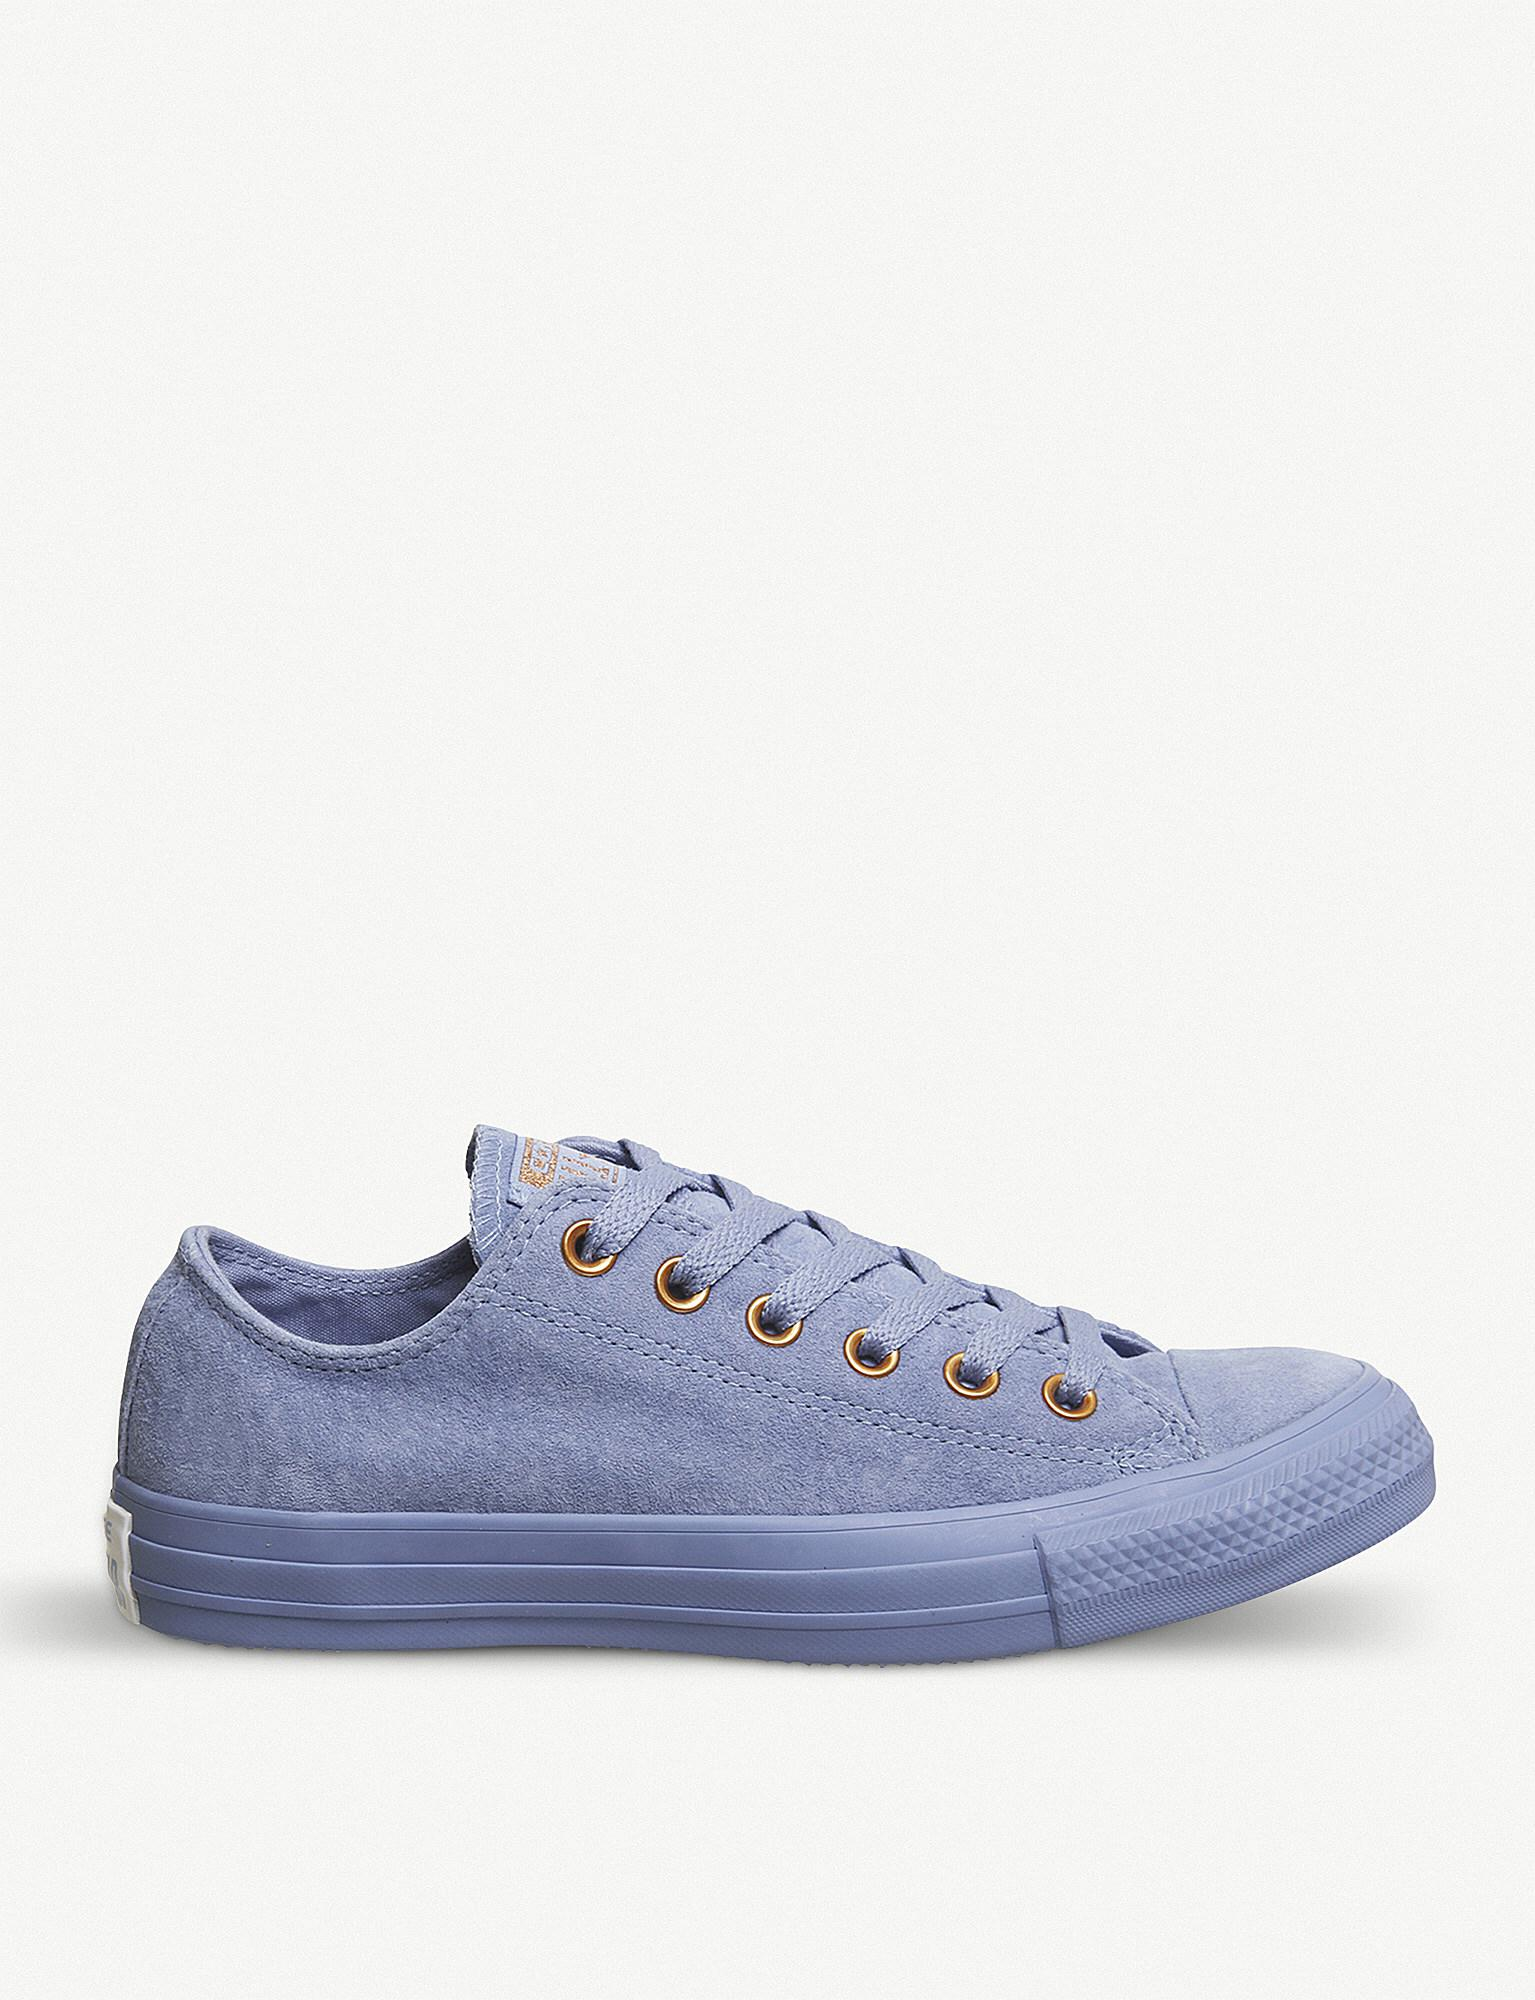 e890c9c9a615 Lyst - Converse All Star Low-top Leather Trainers in Blue for Men